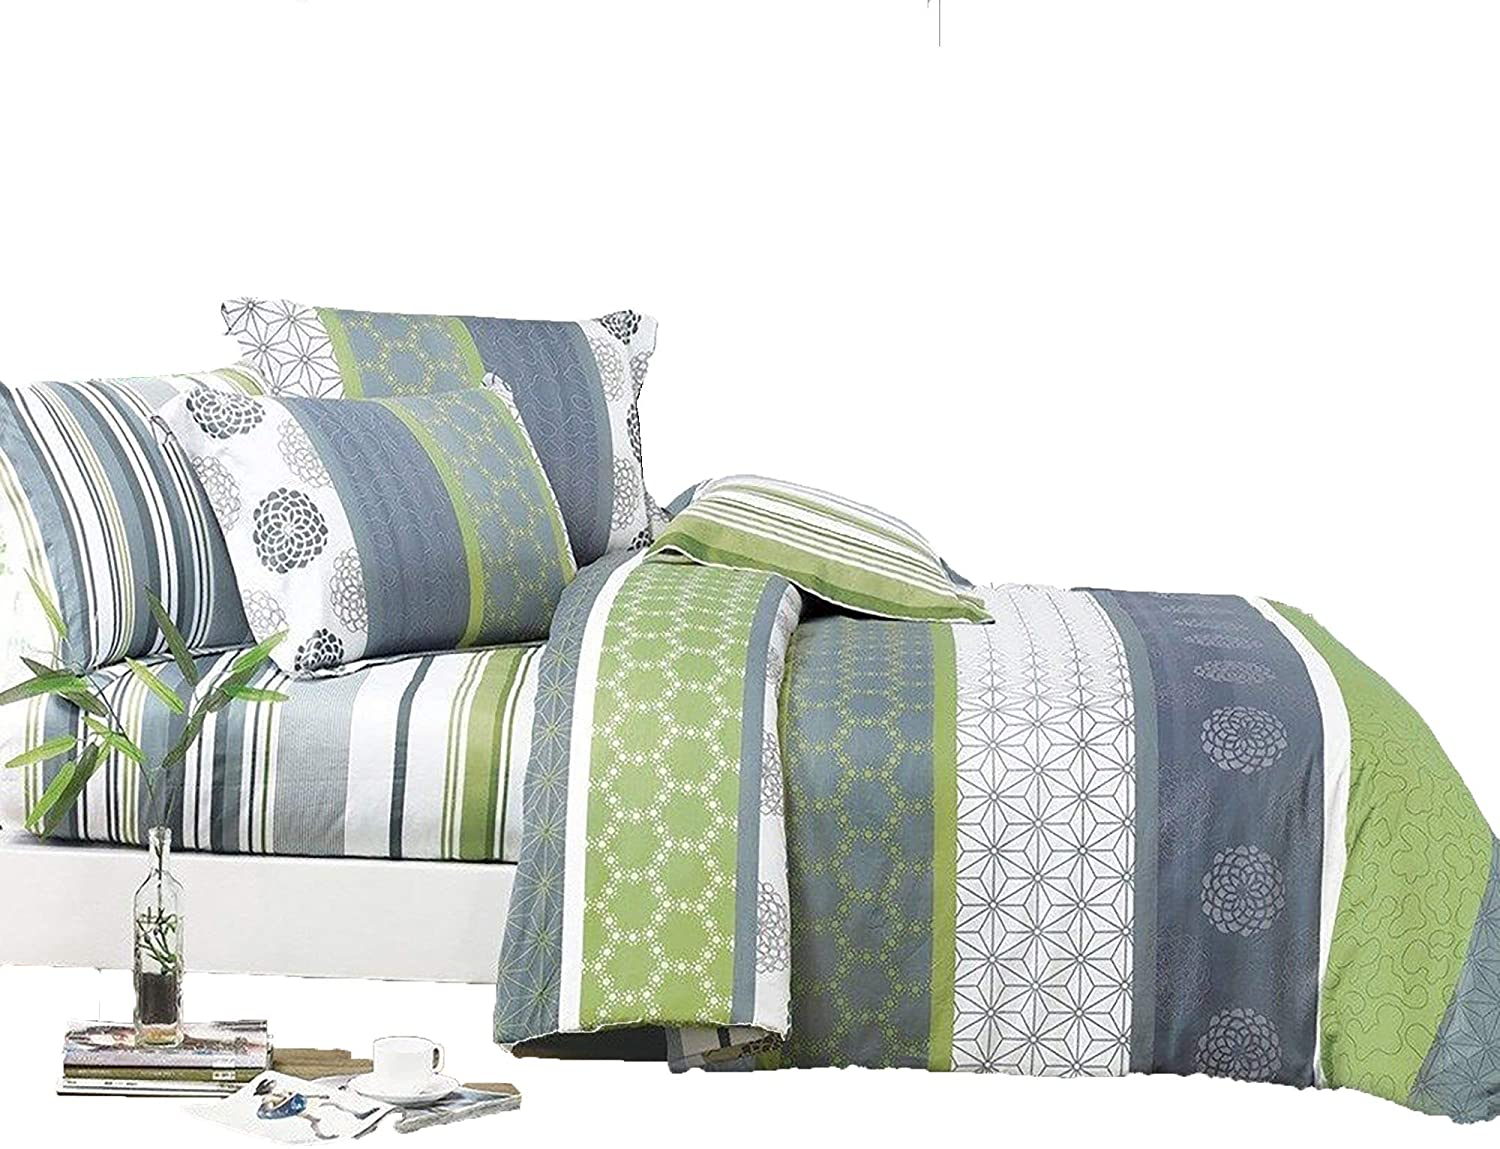 Swanson Beddings Serene 2-Piece 100% Cotton Bedding Set: Duvet Cover and One Pillow Sham (Twin)